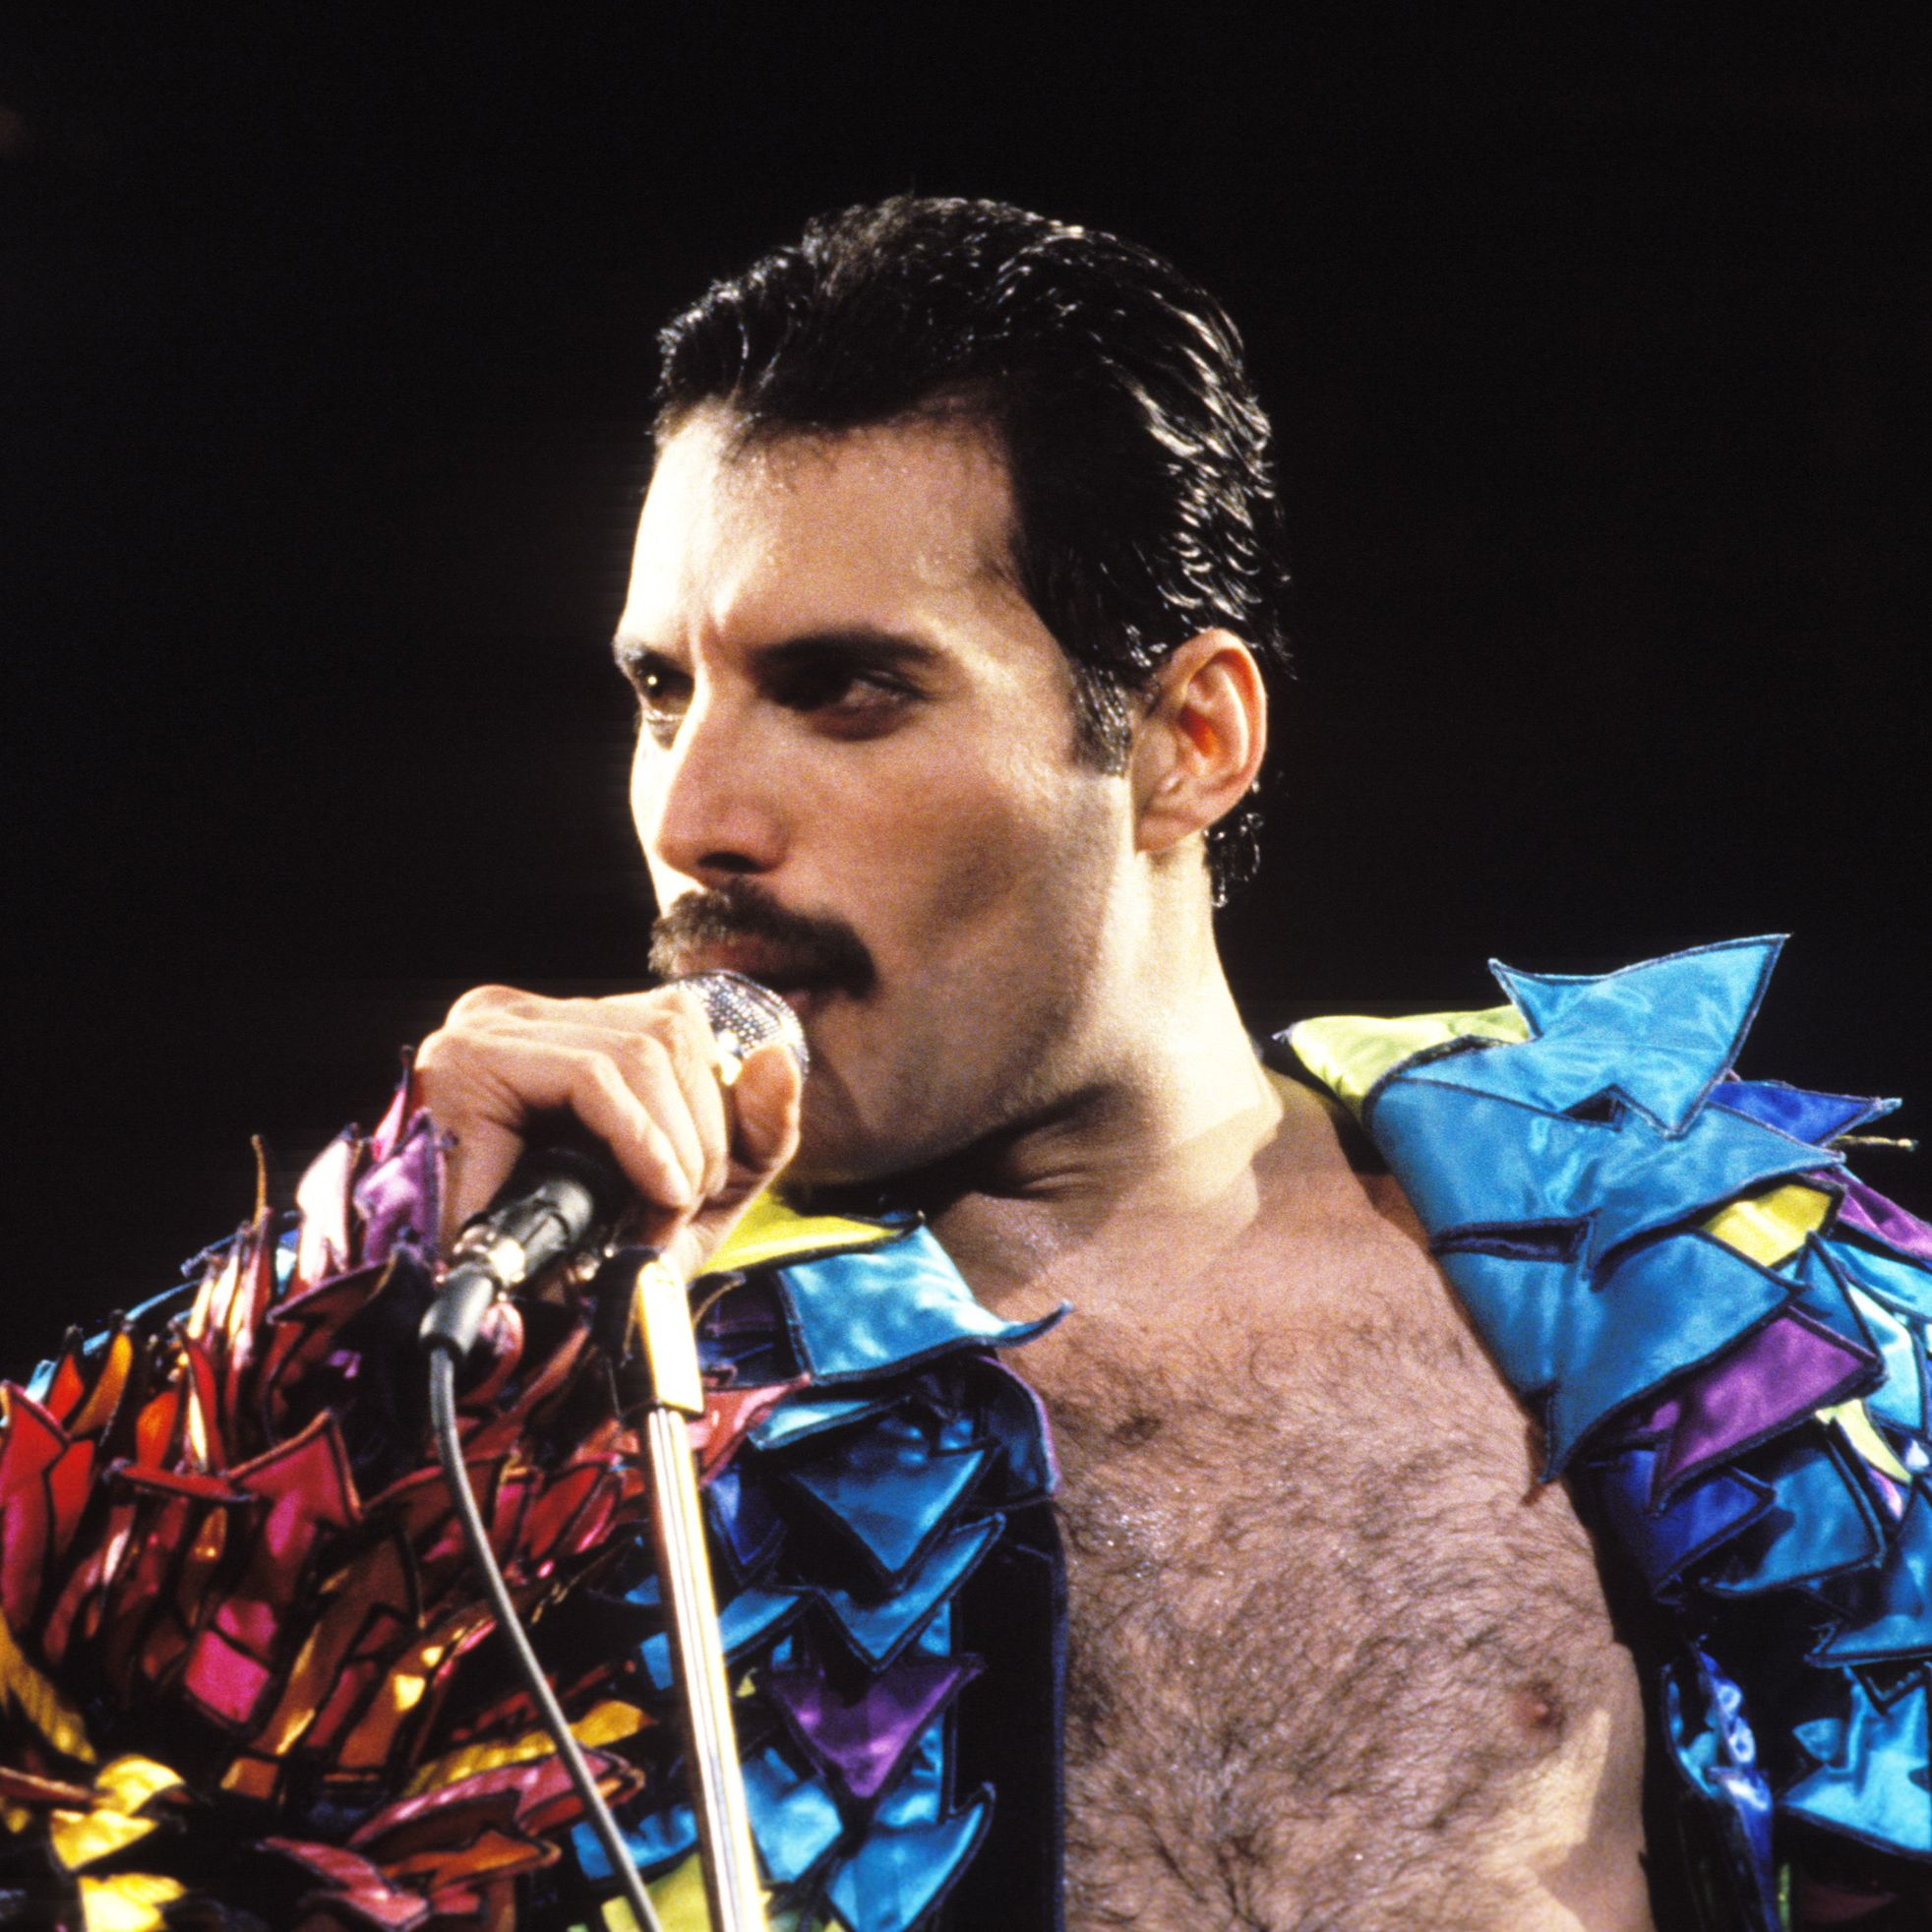 1984: Freddie Mercury Whether he was serving full-on glam or dressing up in flamboyant costumes, the Queen frontman's mustache was always part of the total package.